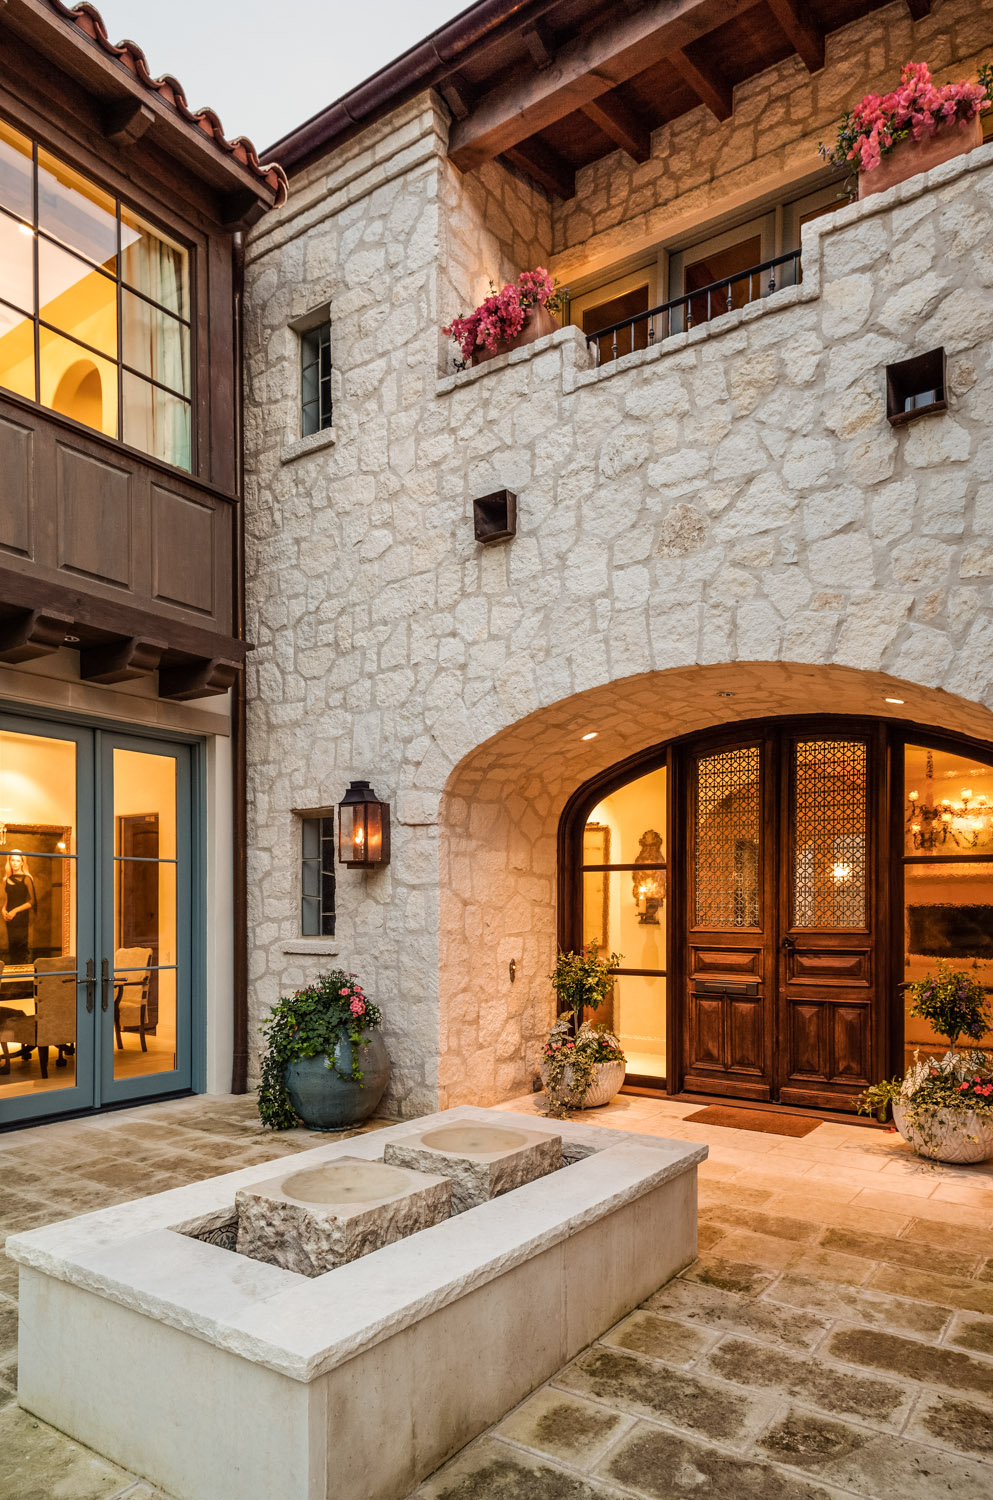 This broad, open entryway sets a double wide door beneath a stone arch, with partially obscured balcony overhead. Large stone bricks wrap a central fountain before the wood doors.